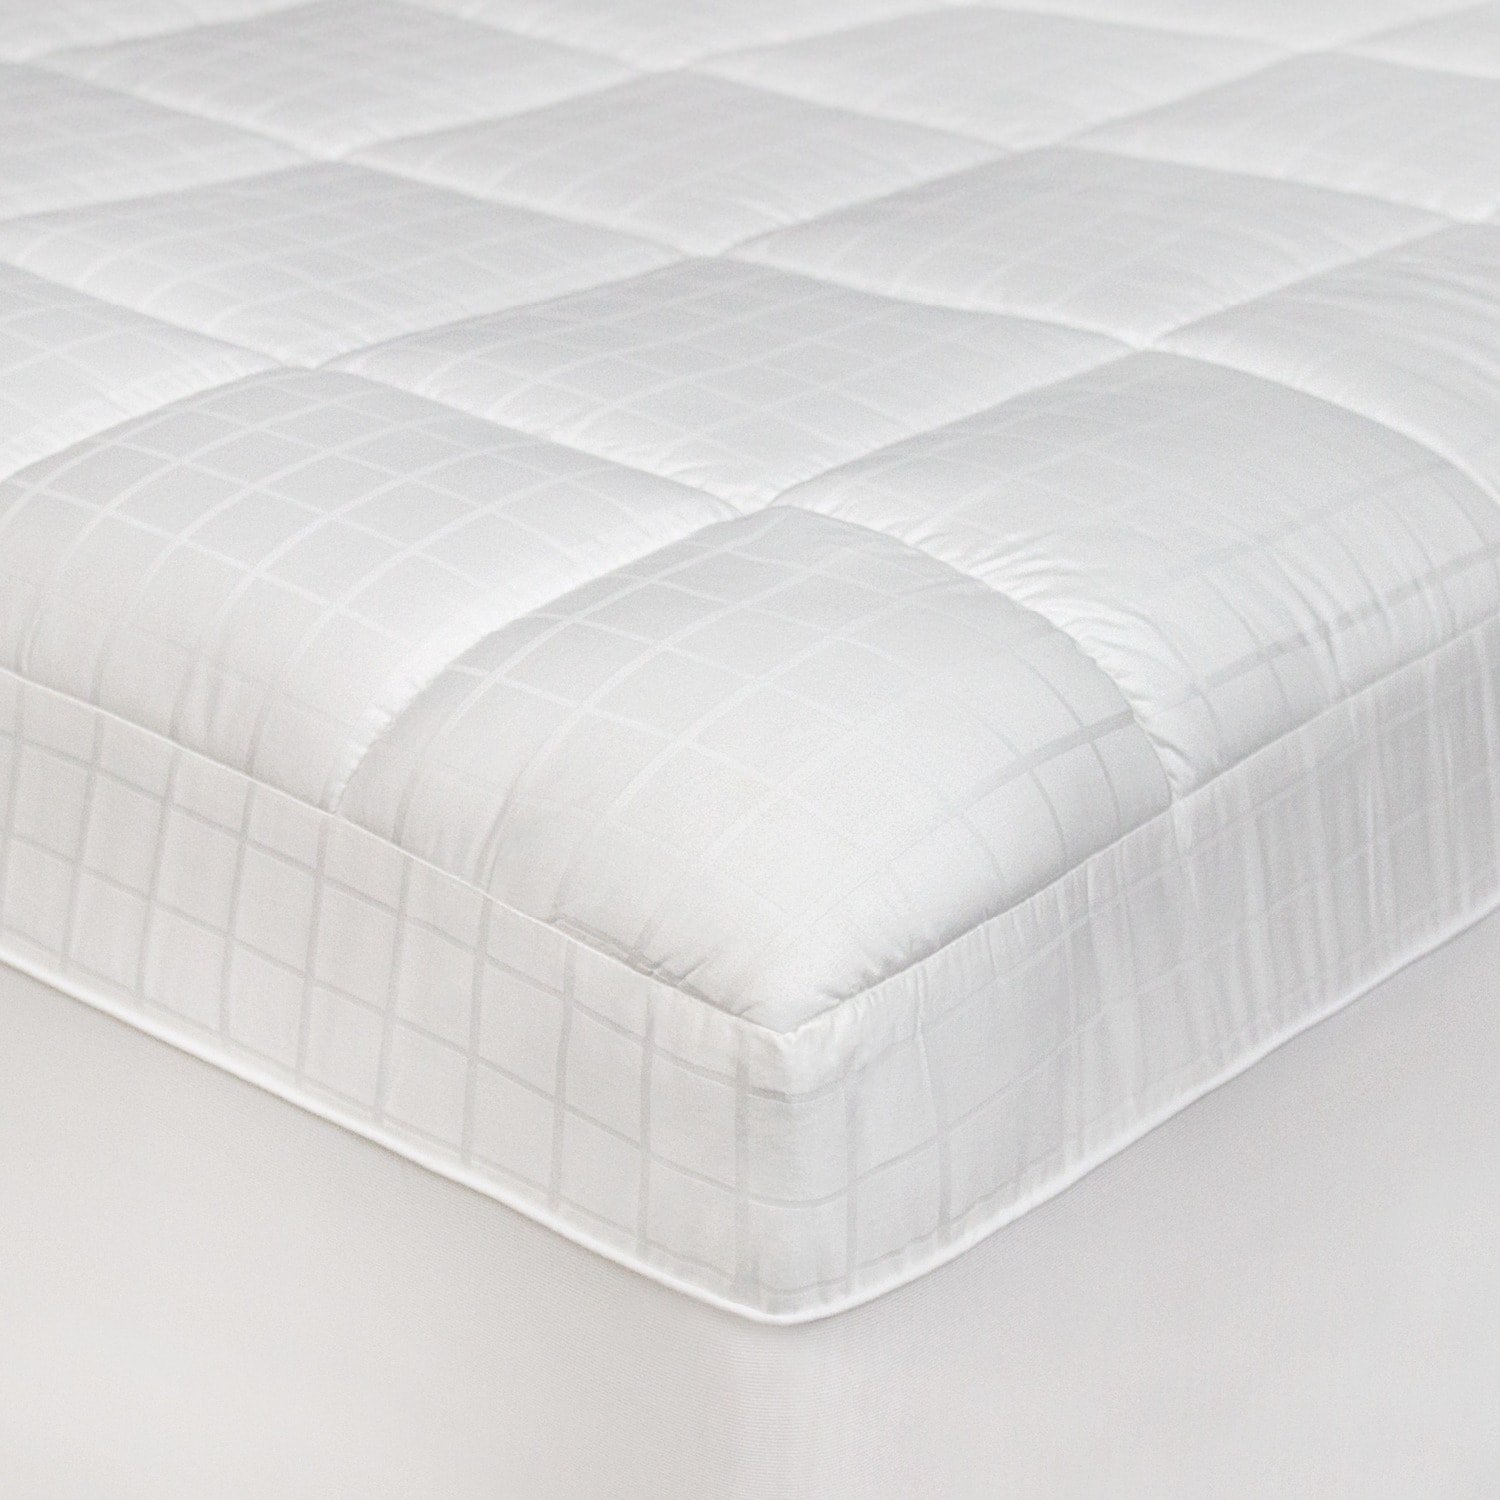 SwissLux Antimicrobial Mattress Pad King by Swiss Lux (Image #2)